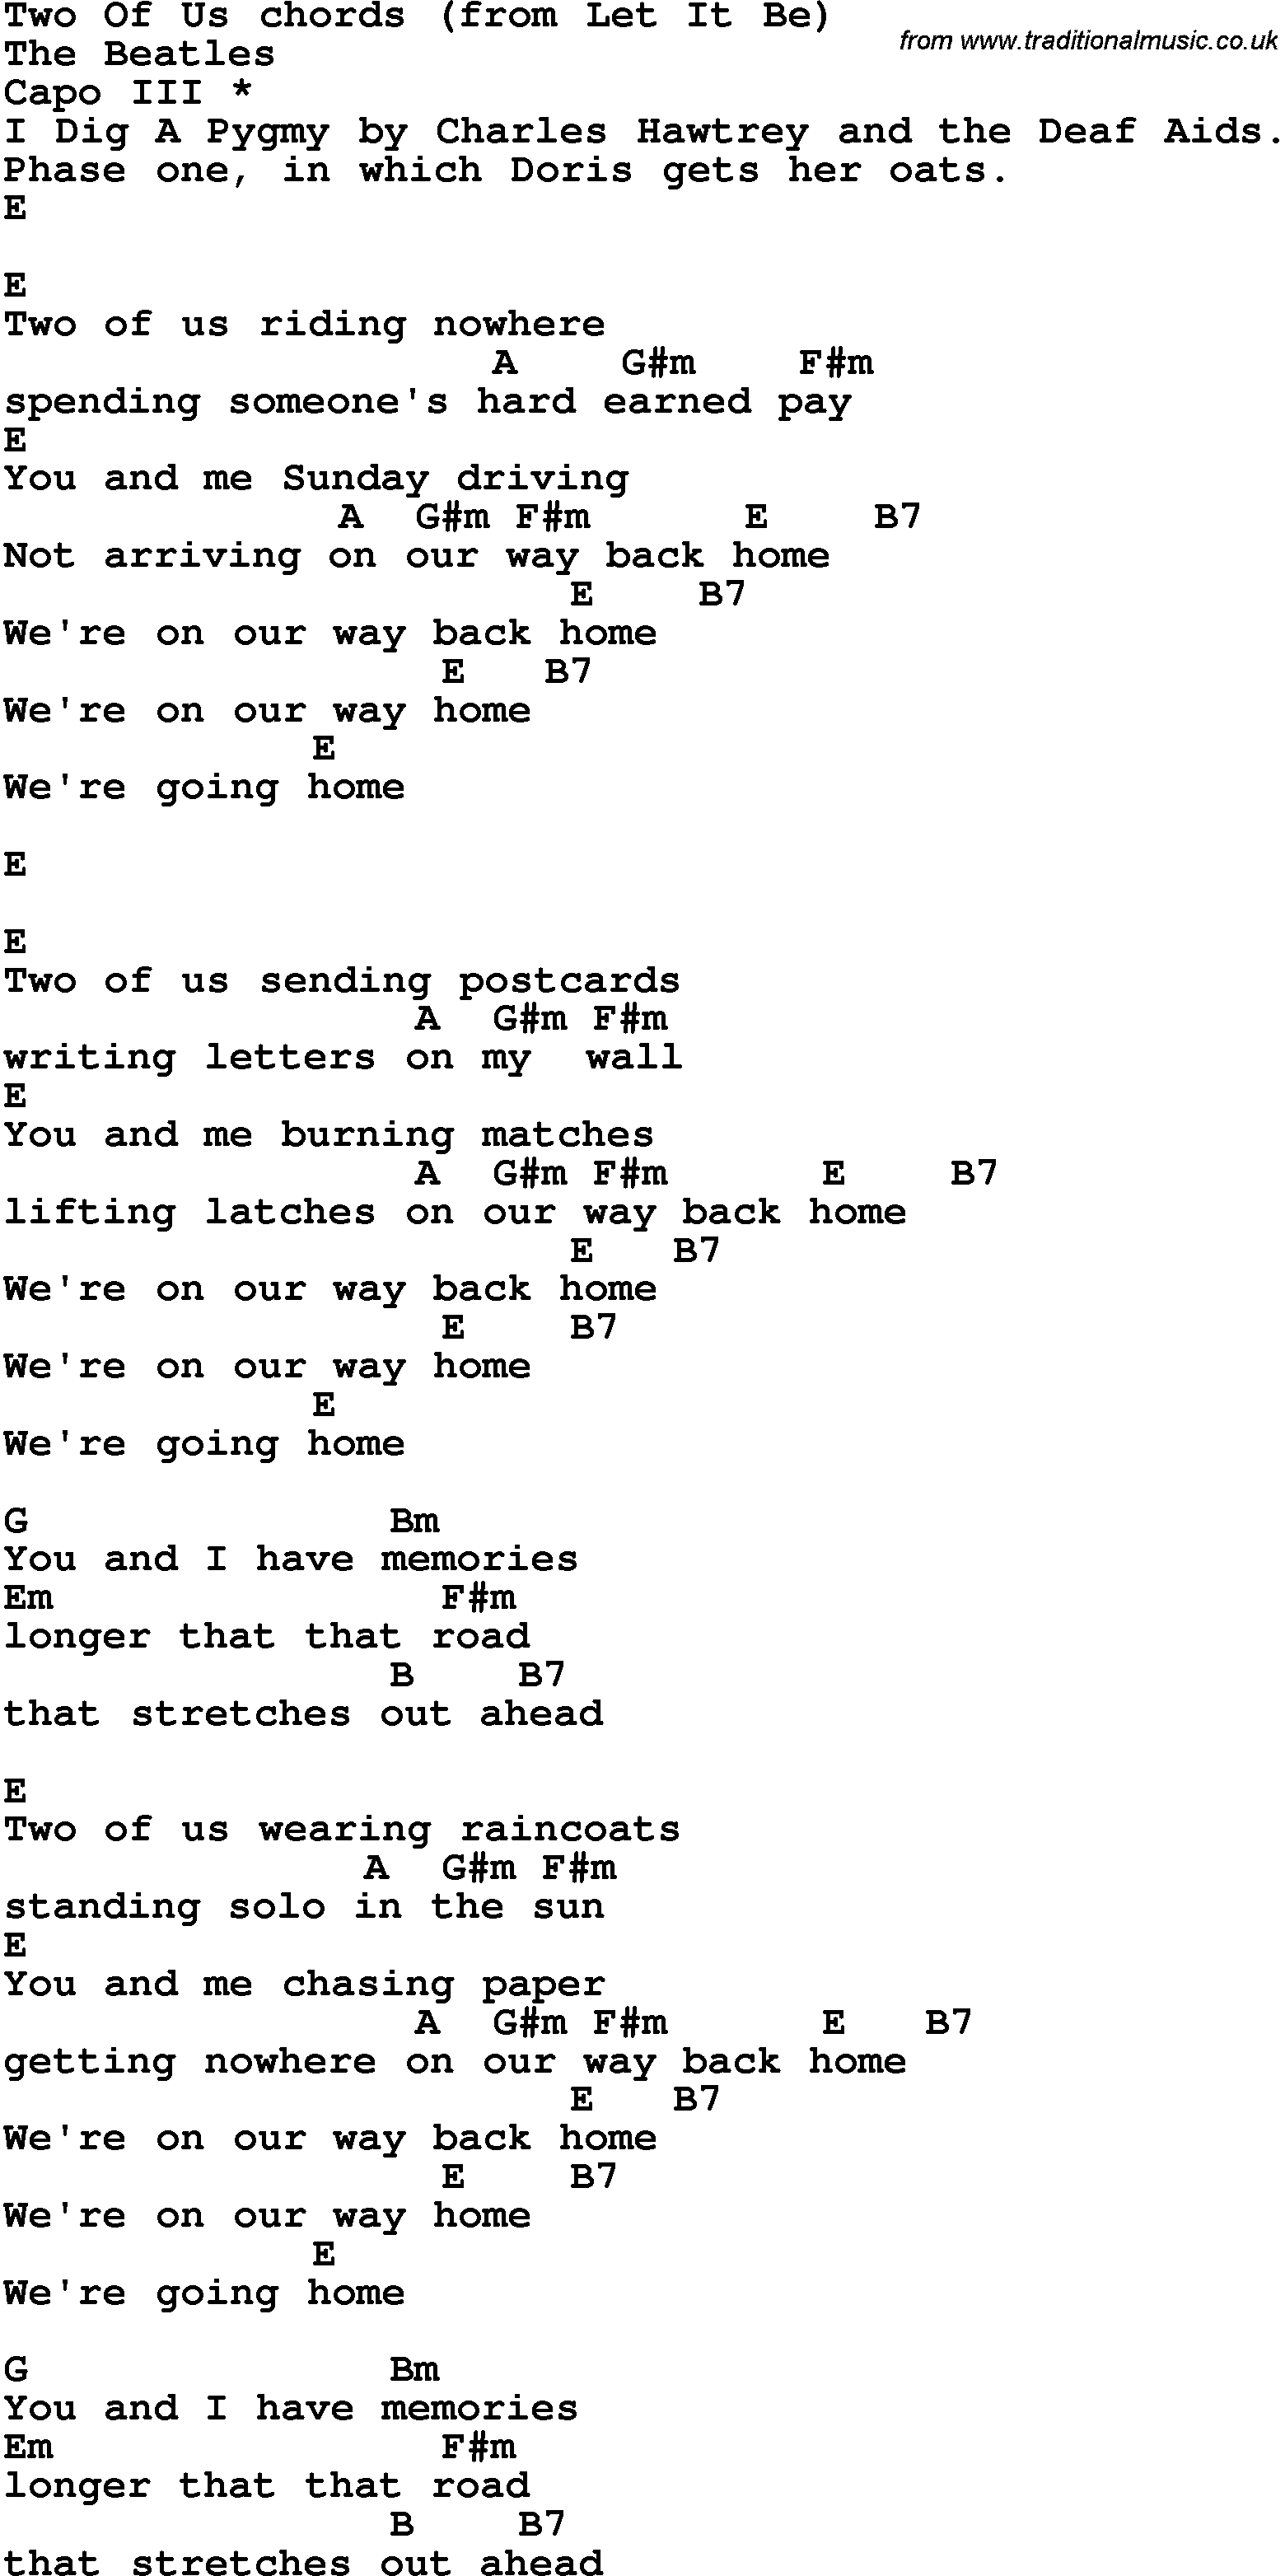 Song Lyrics With Guitar Chords For Two Of Us